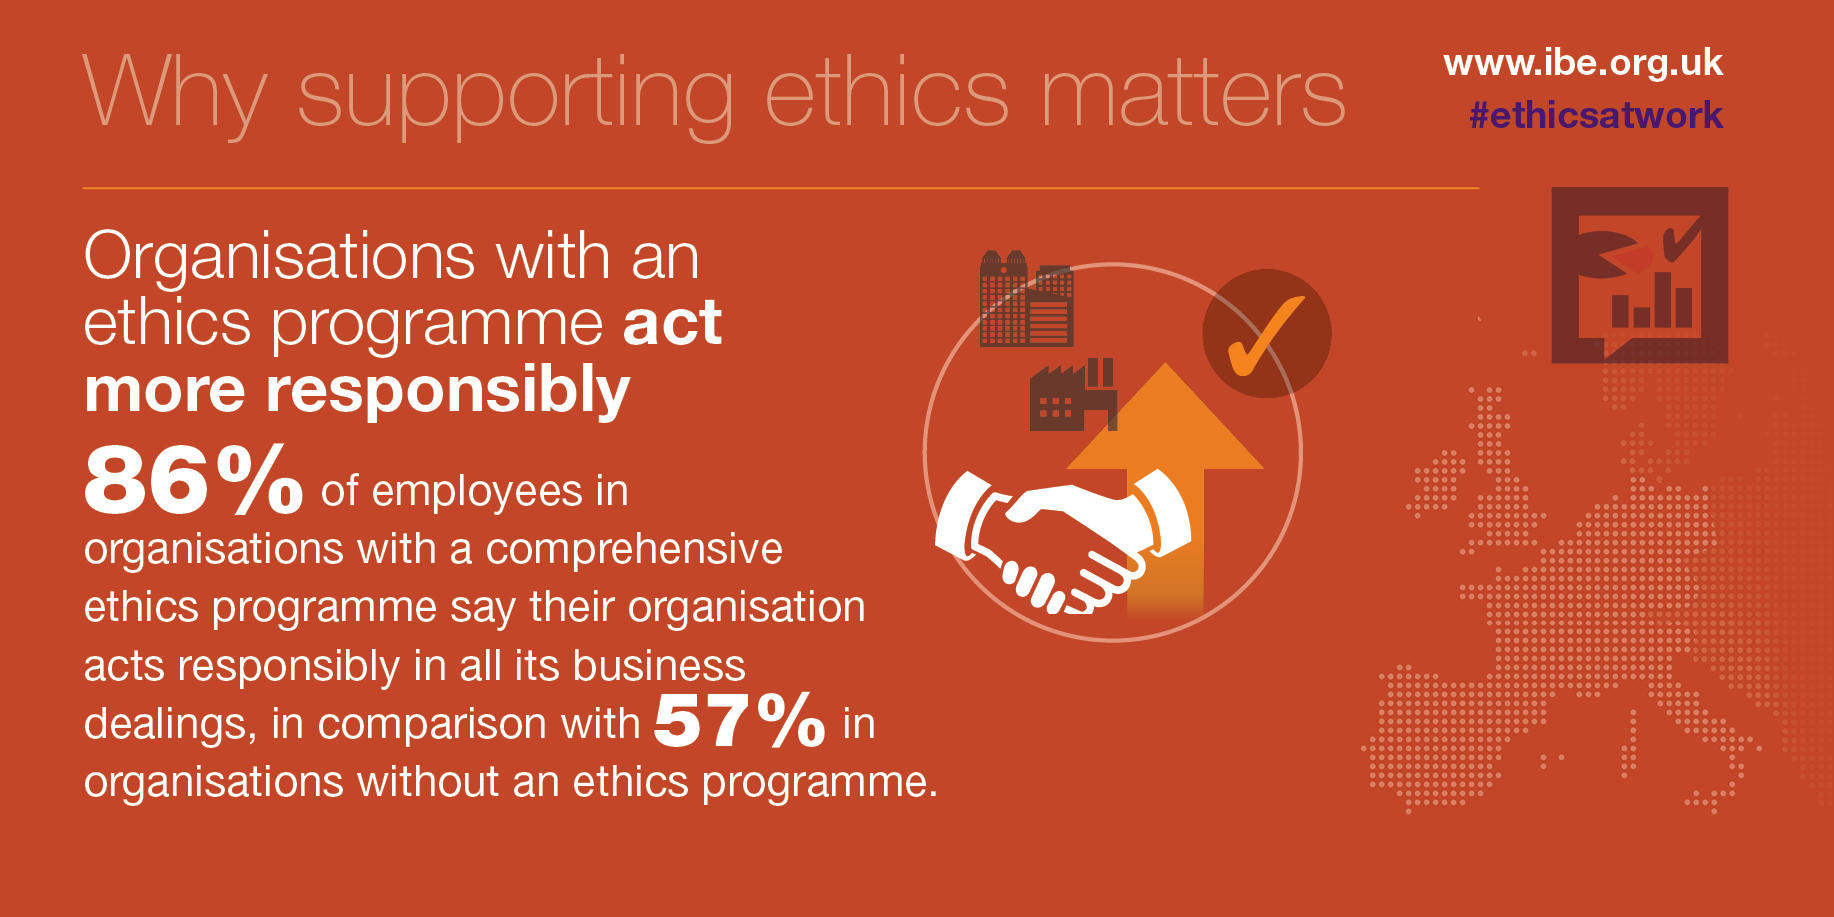 Why supporting ethics matters